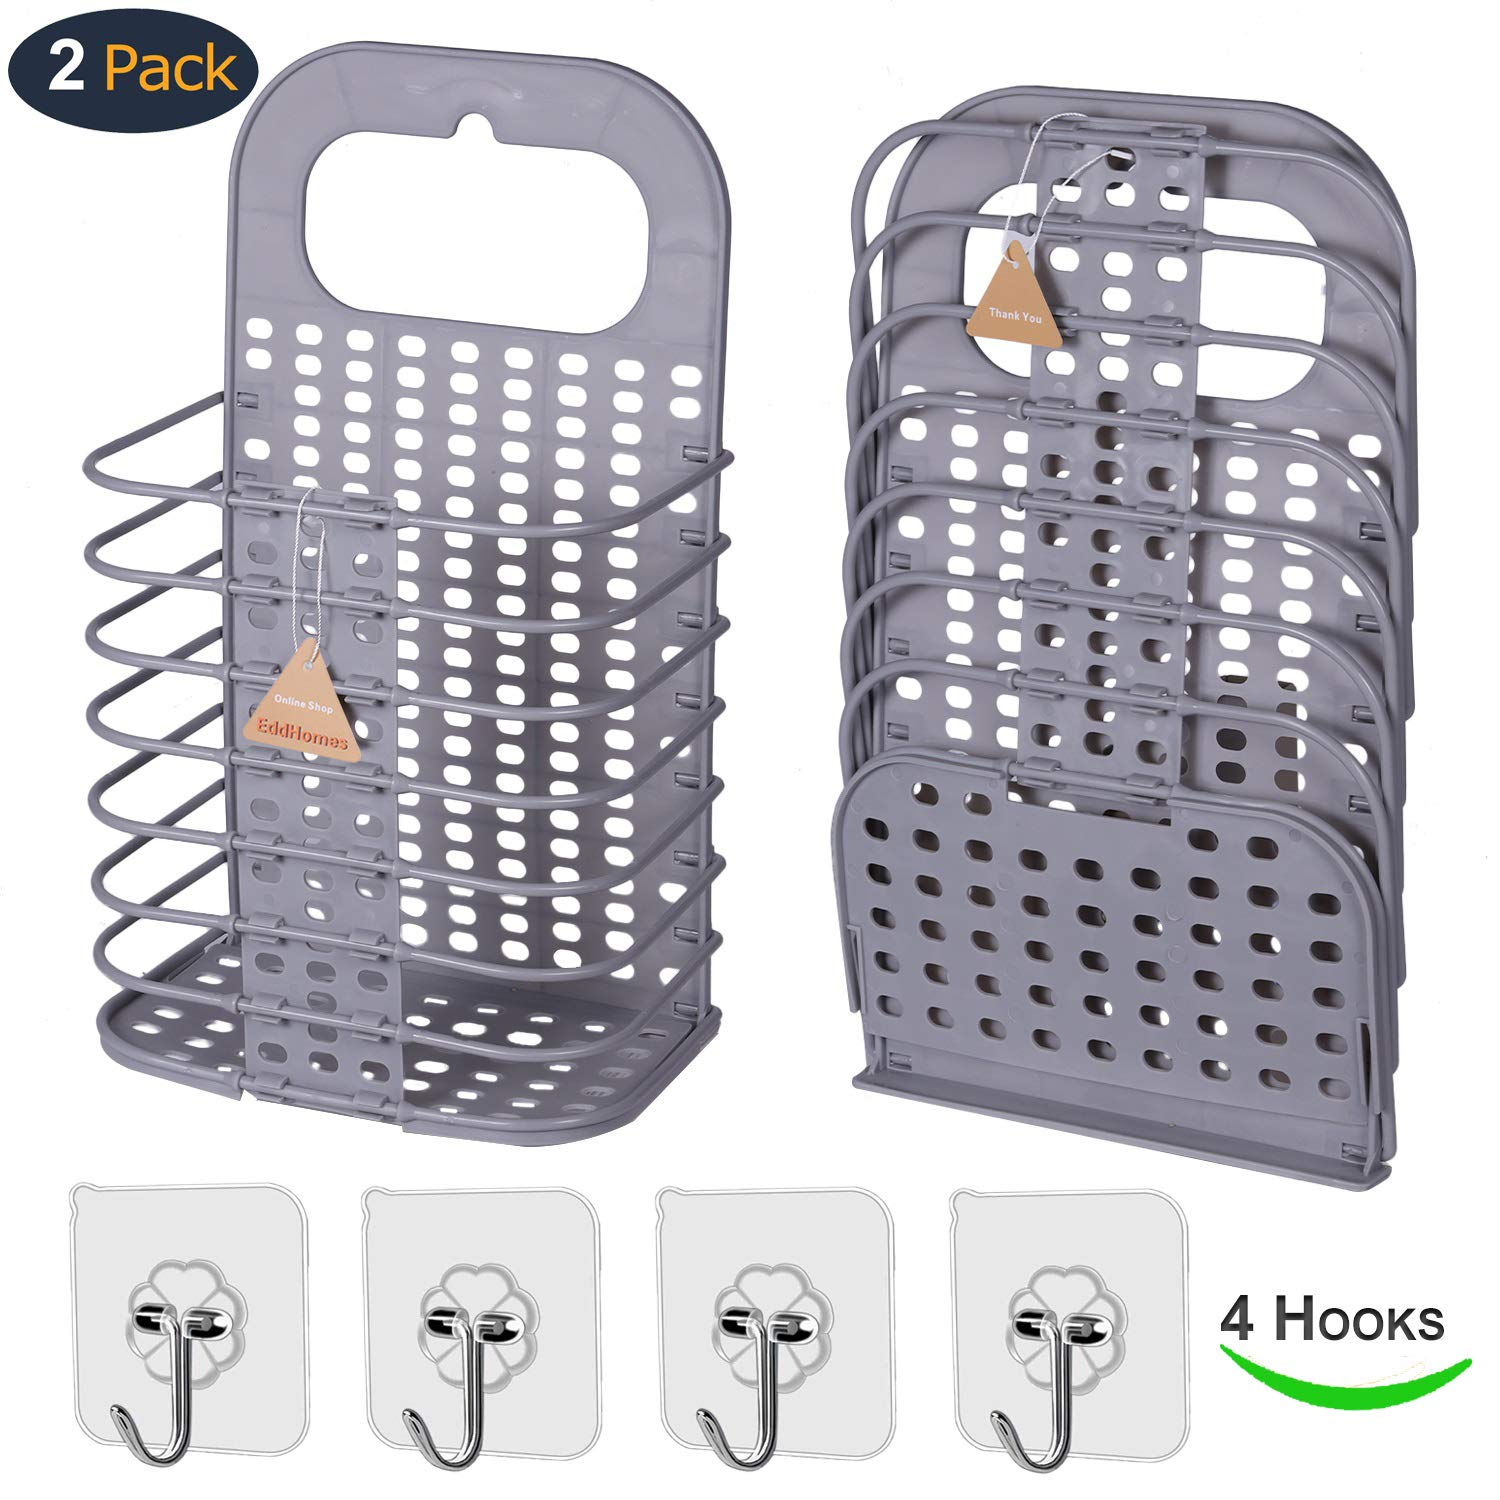 EddHomes Laundry Basket Collapsible Small Dirty Laundry Hamper Basket, Hanging Laundry Basket with Handle Plastic Collaspable Tall Laundry Basket Storage for College Dorm Women 2 Laundry Basket Gray by EddHomes